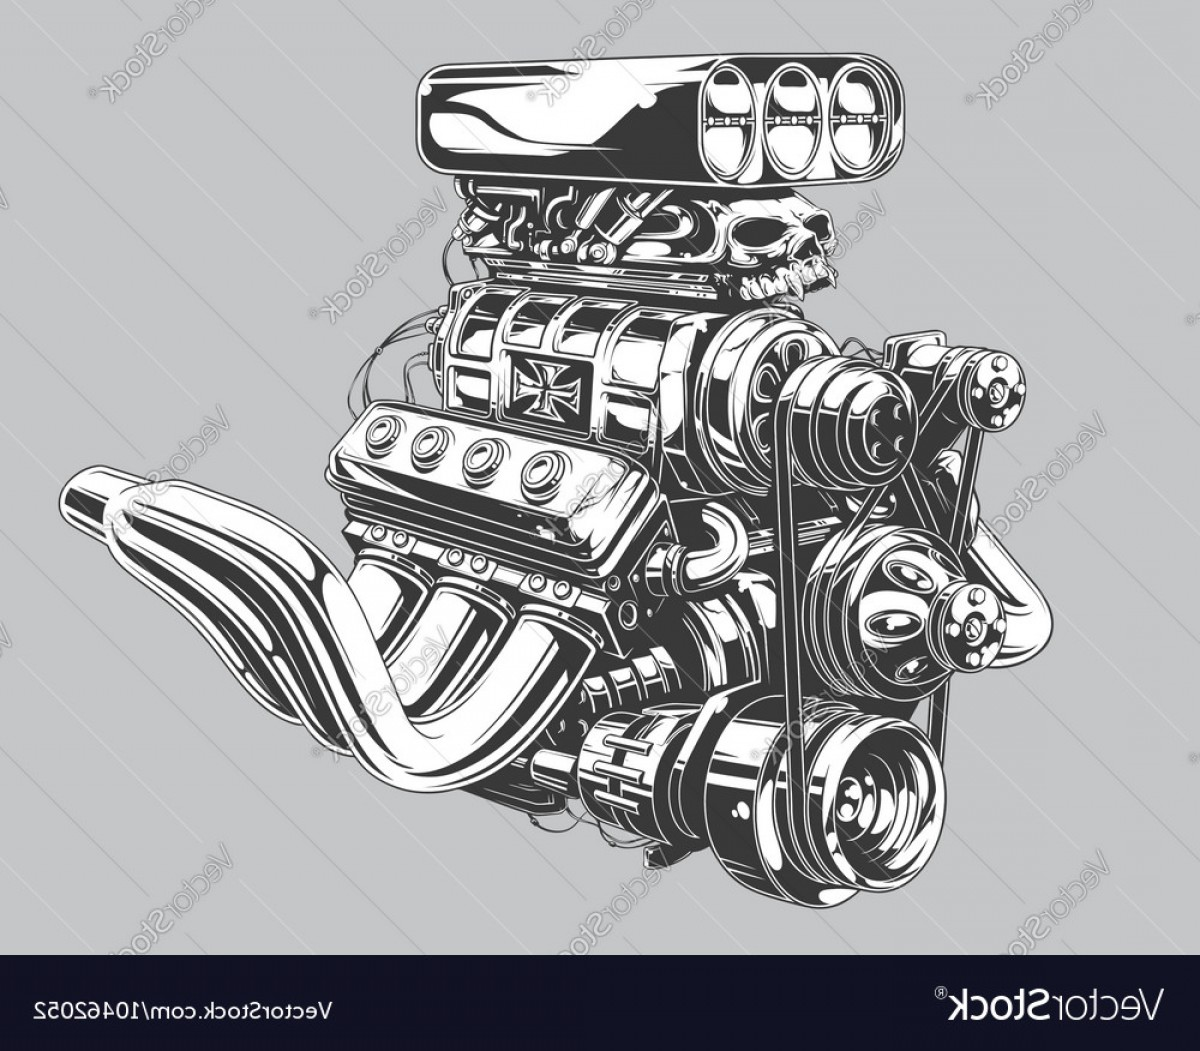 Detailed Tattoo Vector Images: Detailed Hot Road Engine With Skull Tattoo Vector